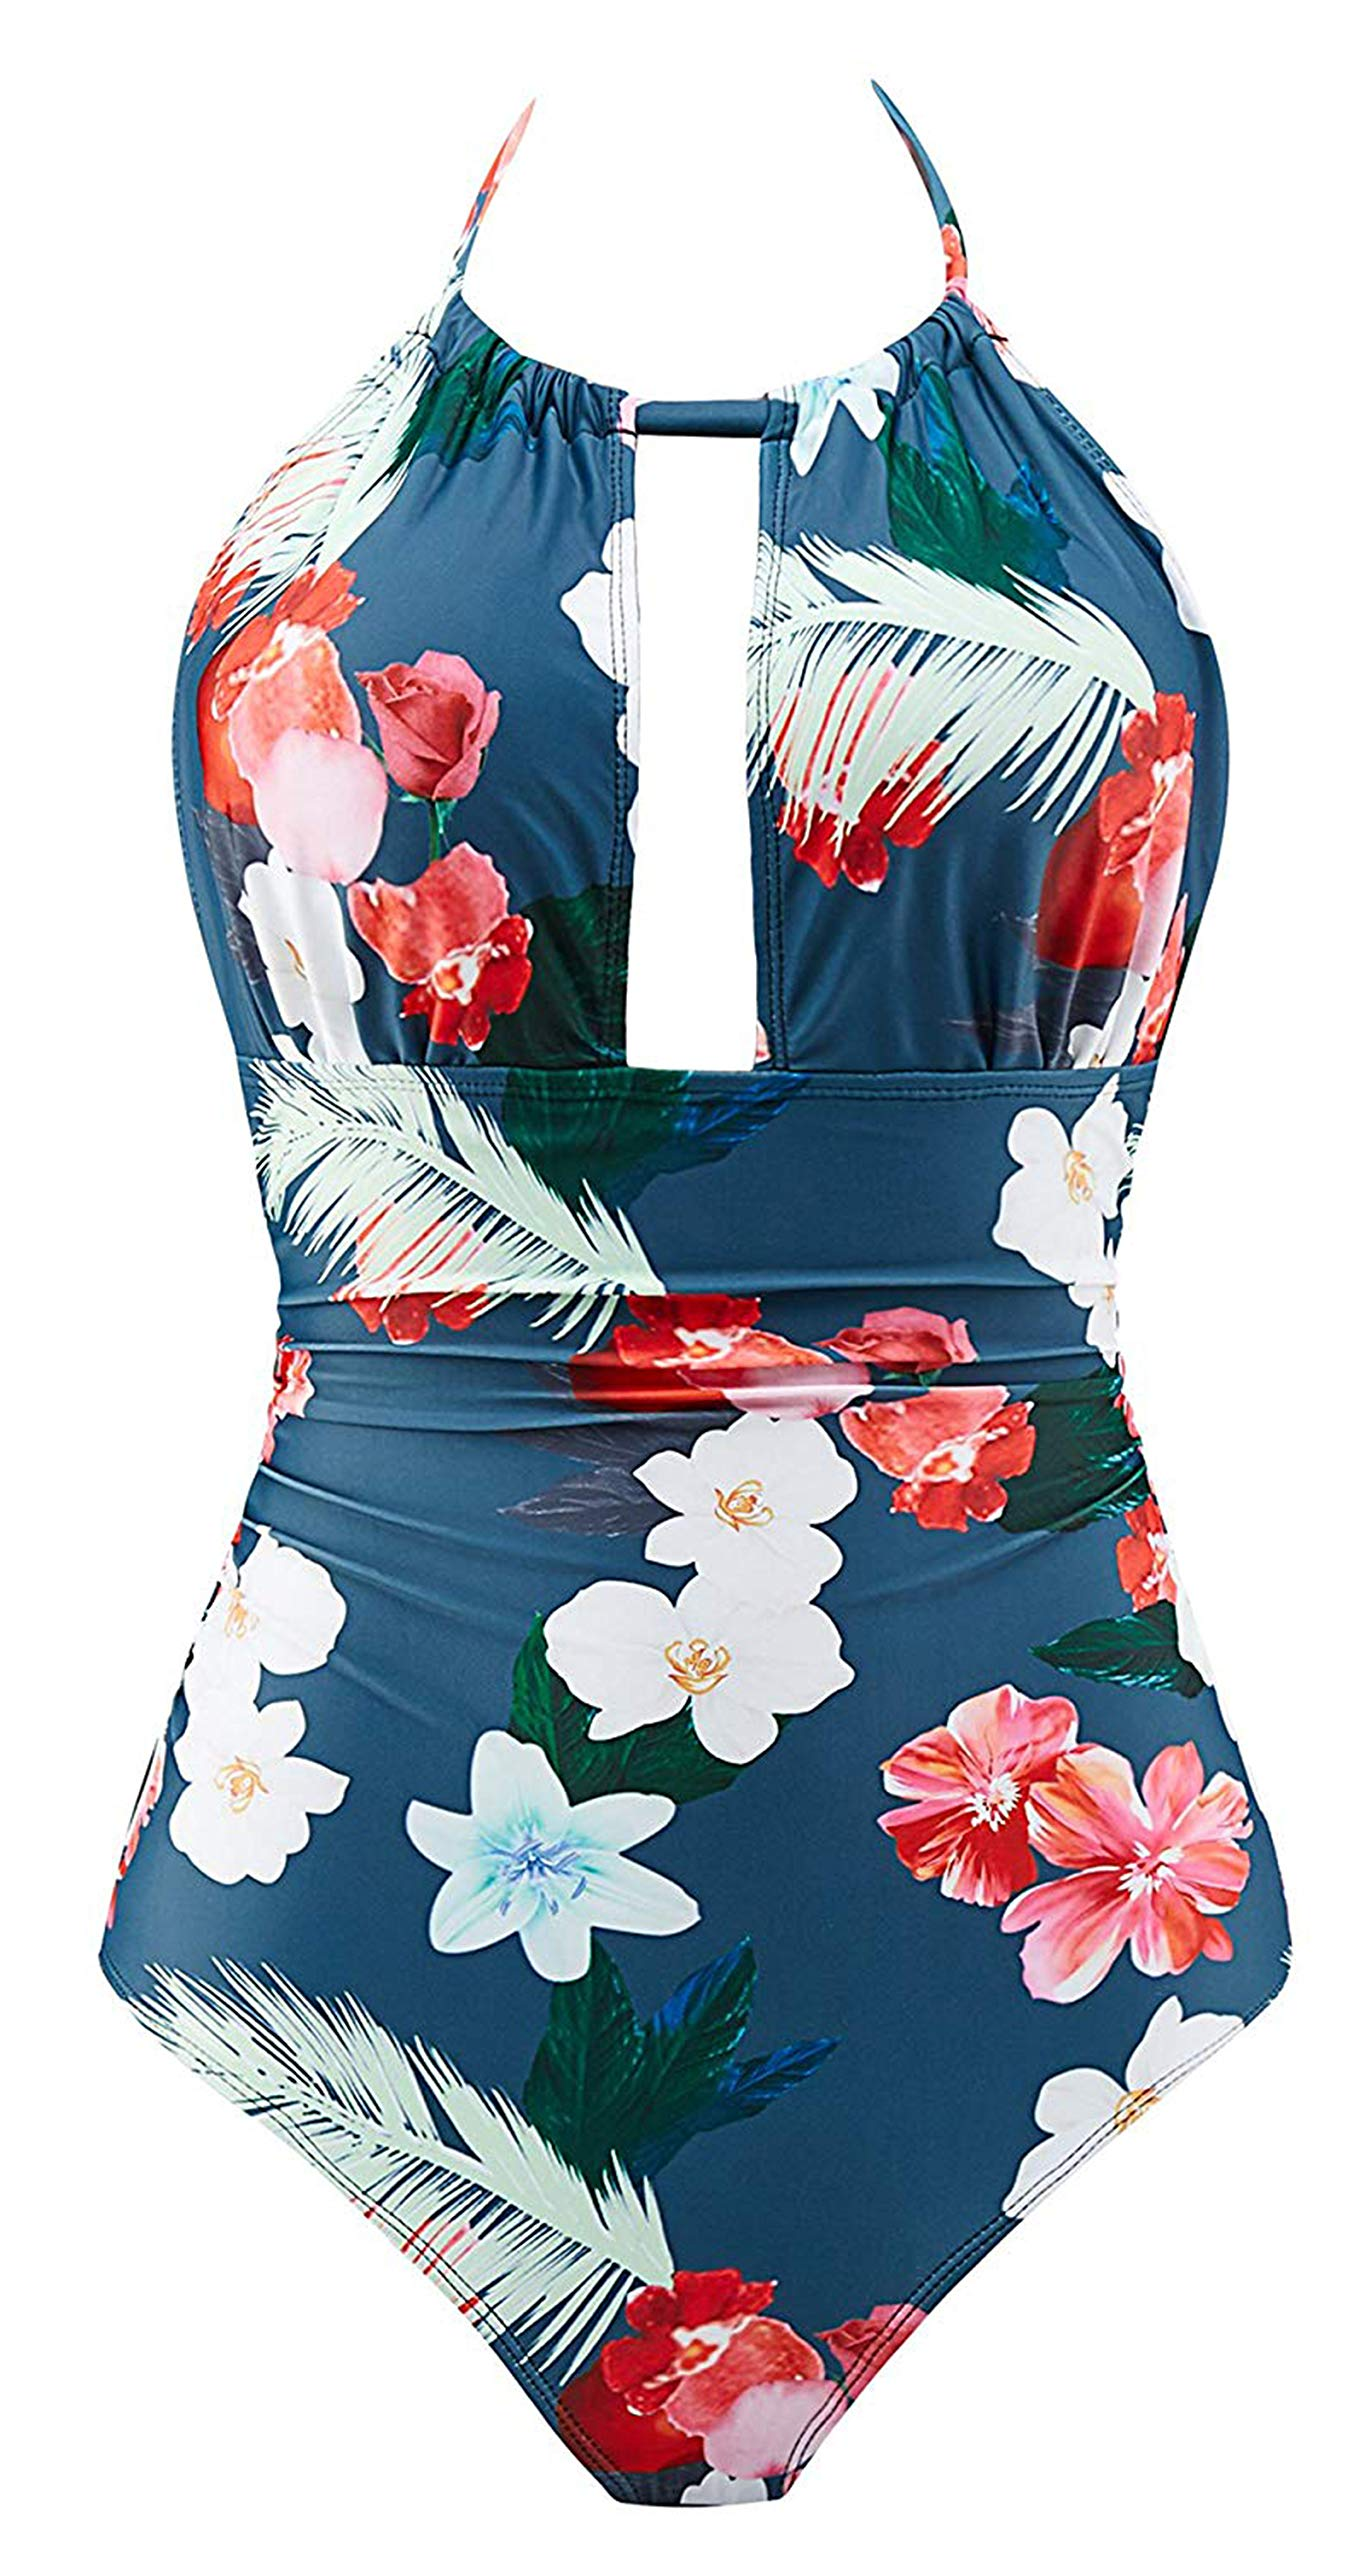 B2prity Women's One Piece Swimsuits Tummy Control Swimwear Slimming Monokini Bathing Suits for Women Backless V Neck